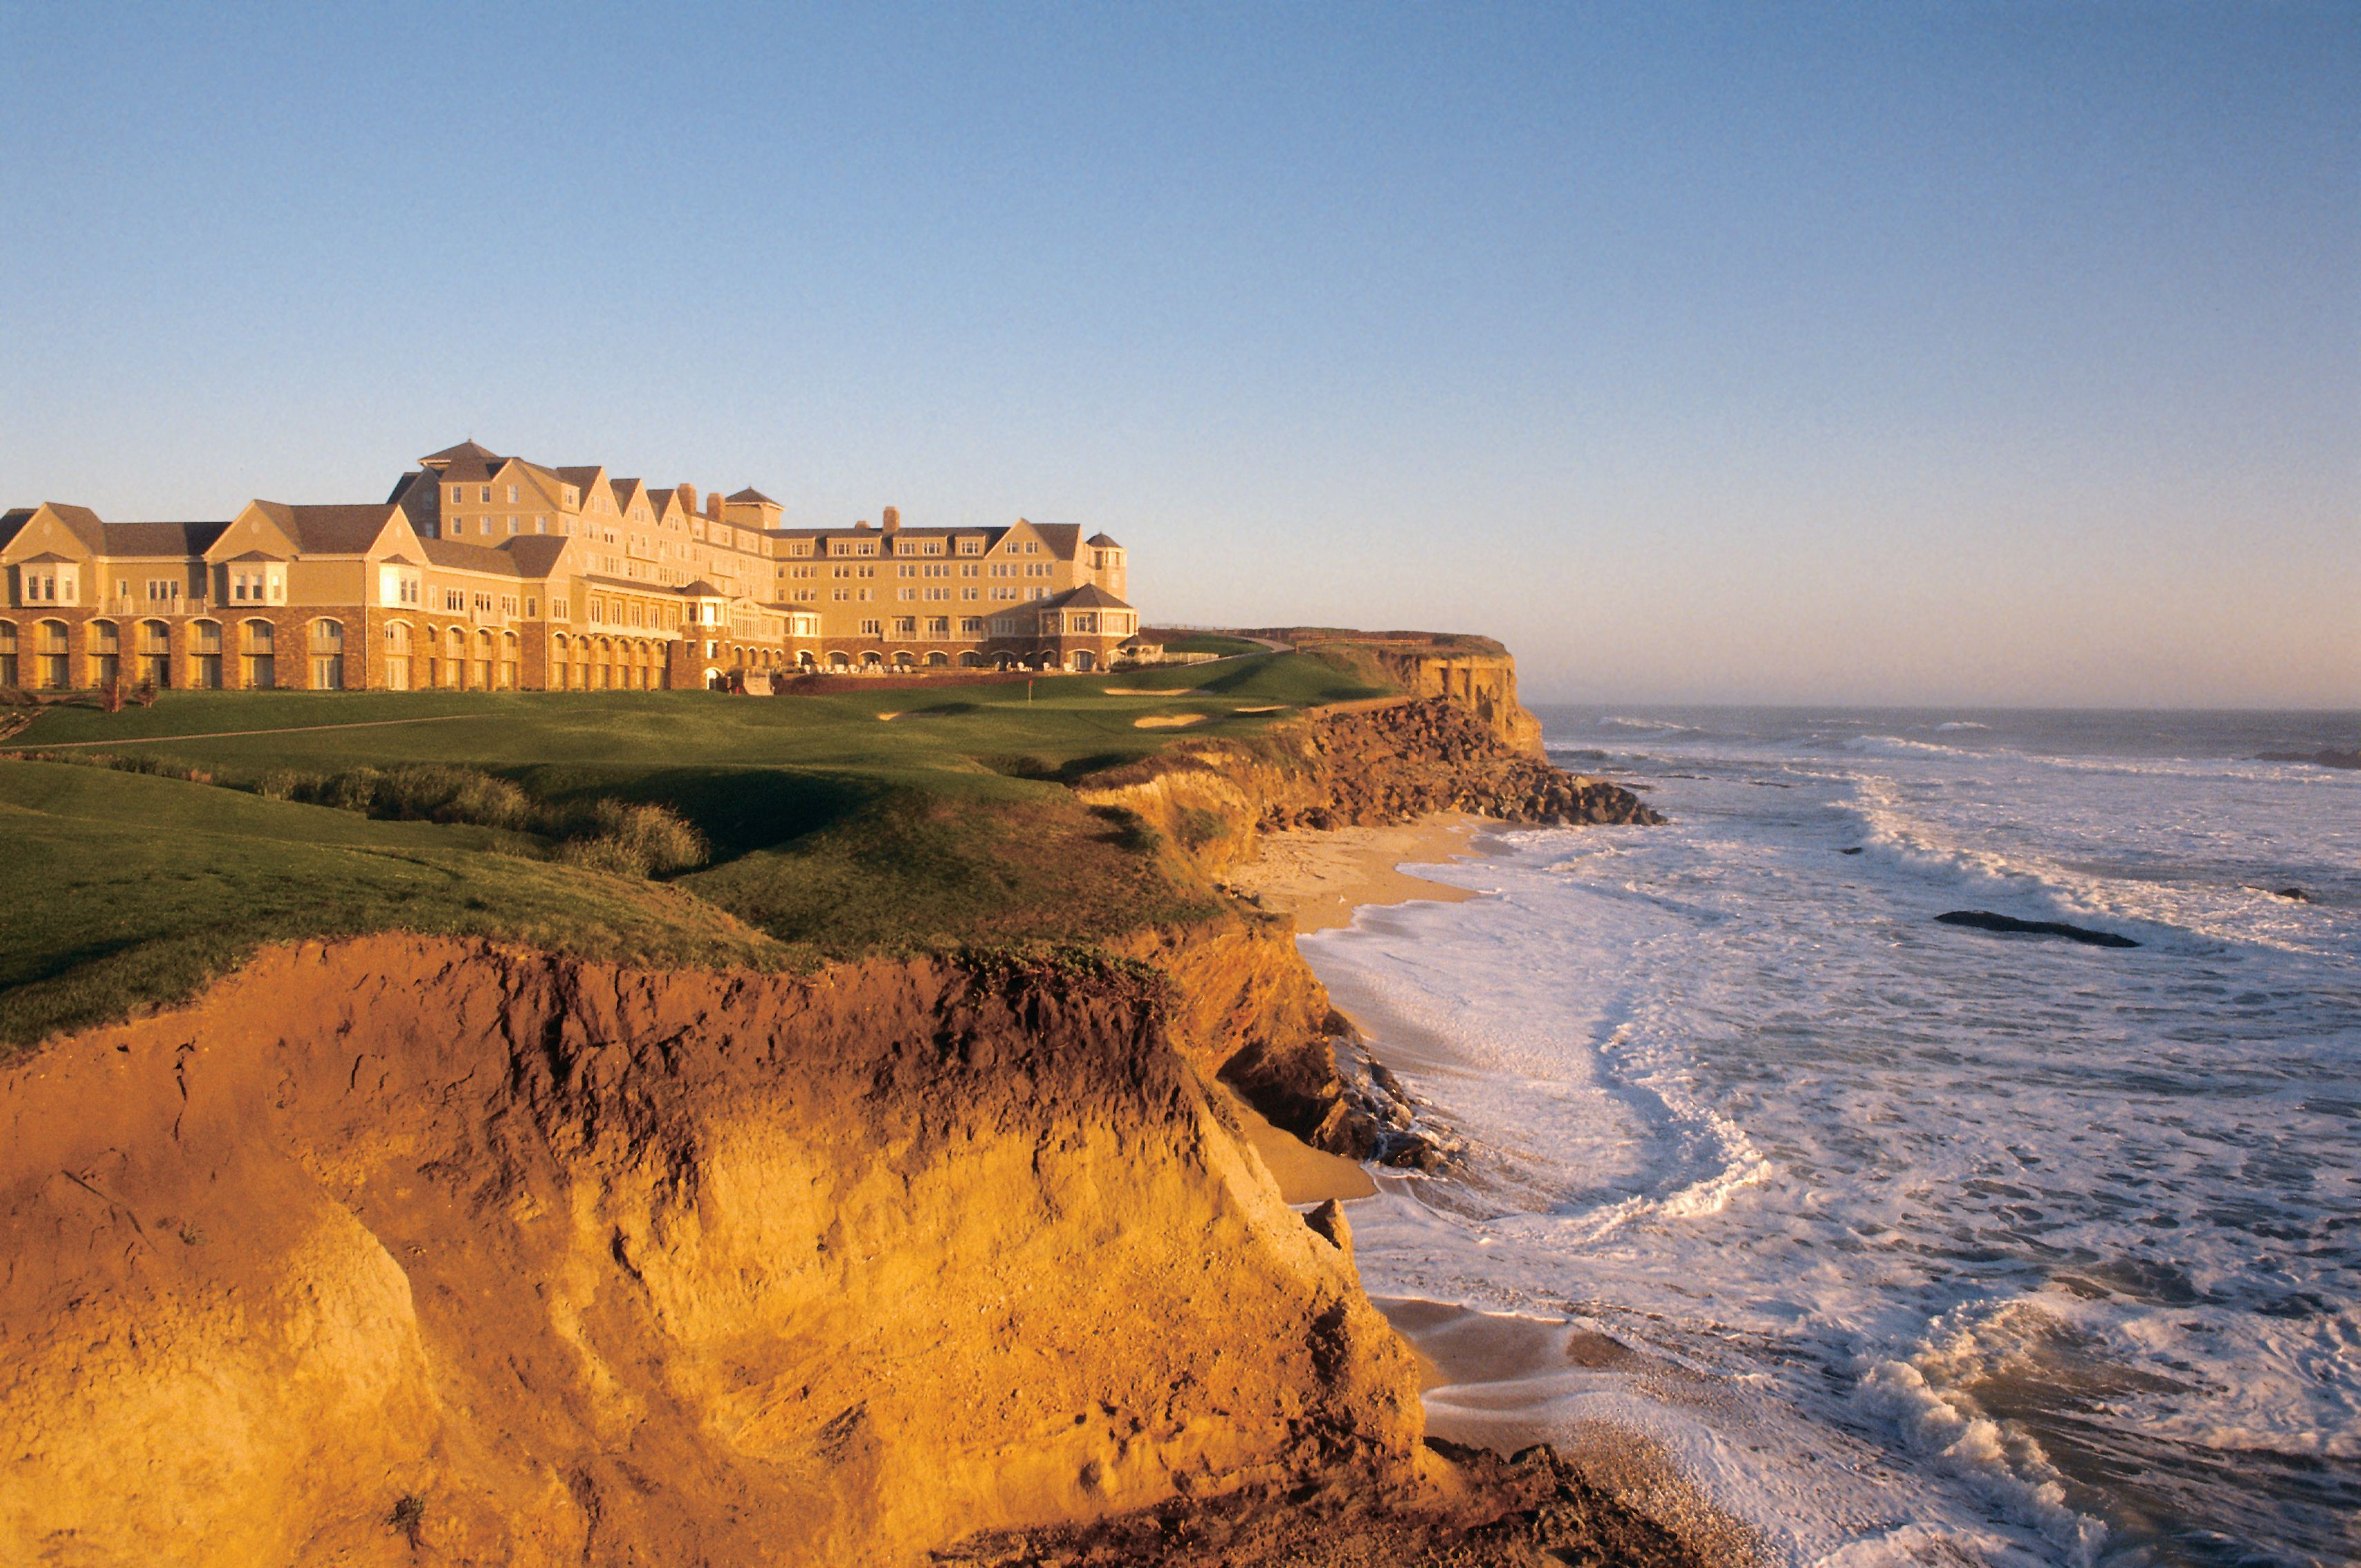 Ritz Carlton Halfmoon Bay California Out Of All The Hotels I Ve Been To And I Ve Traveled A Lot Half Moon Bay Ritz Carlton Half Moon Bay Hotels And Resorts